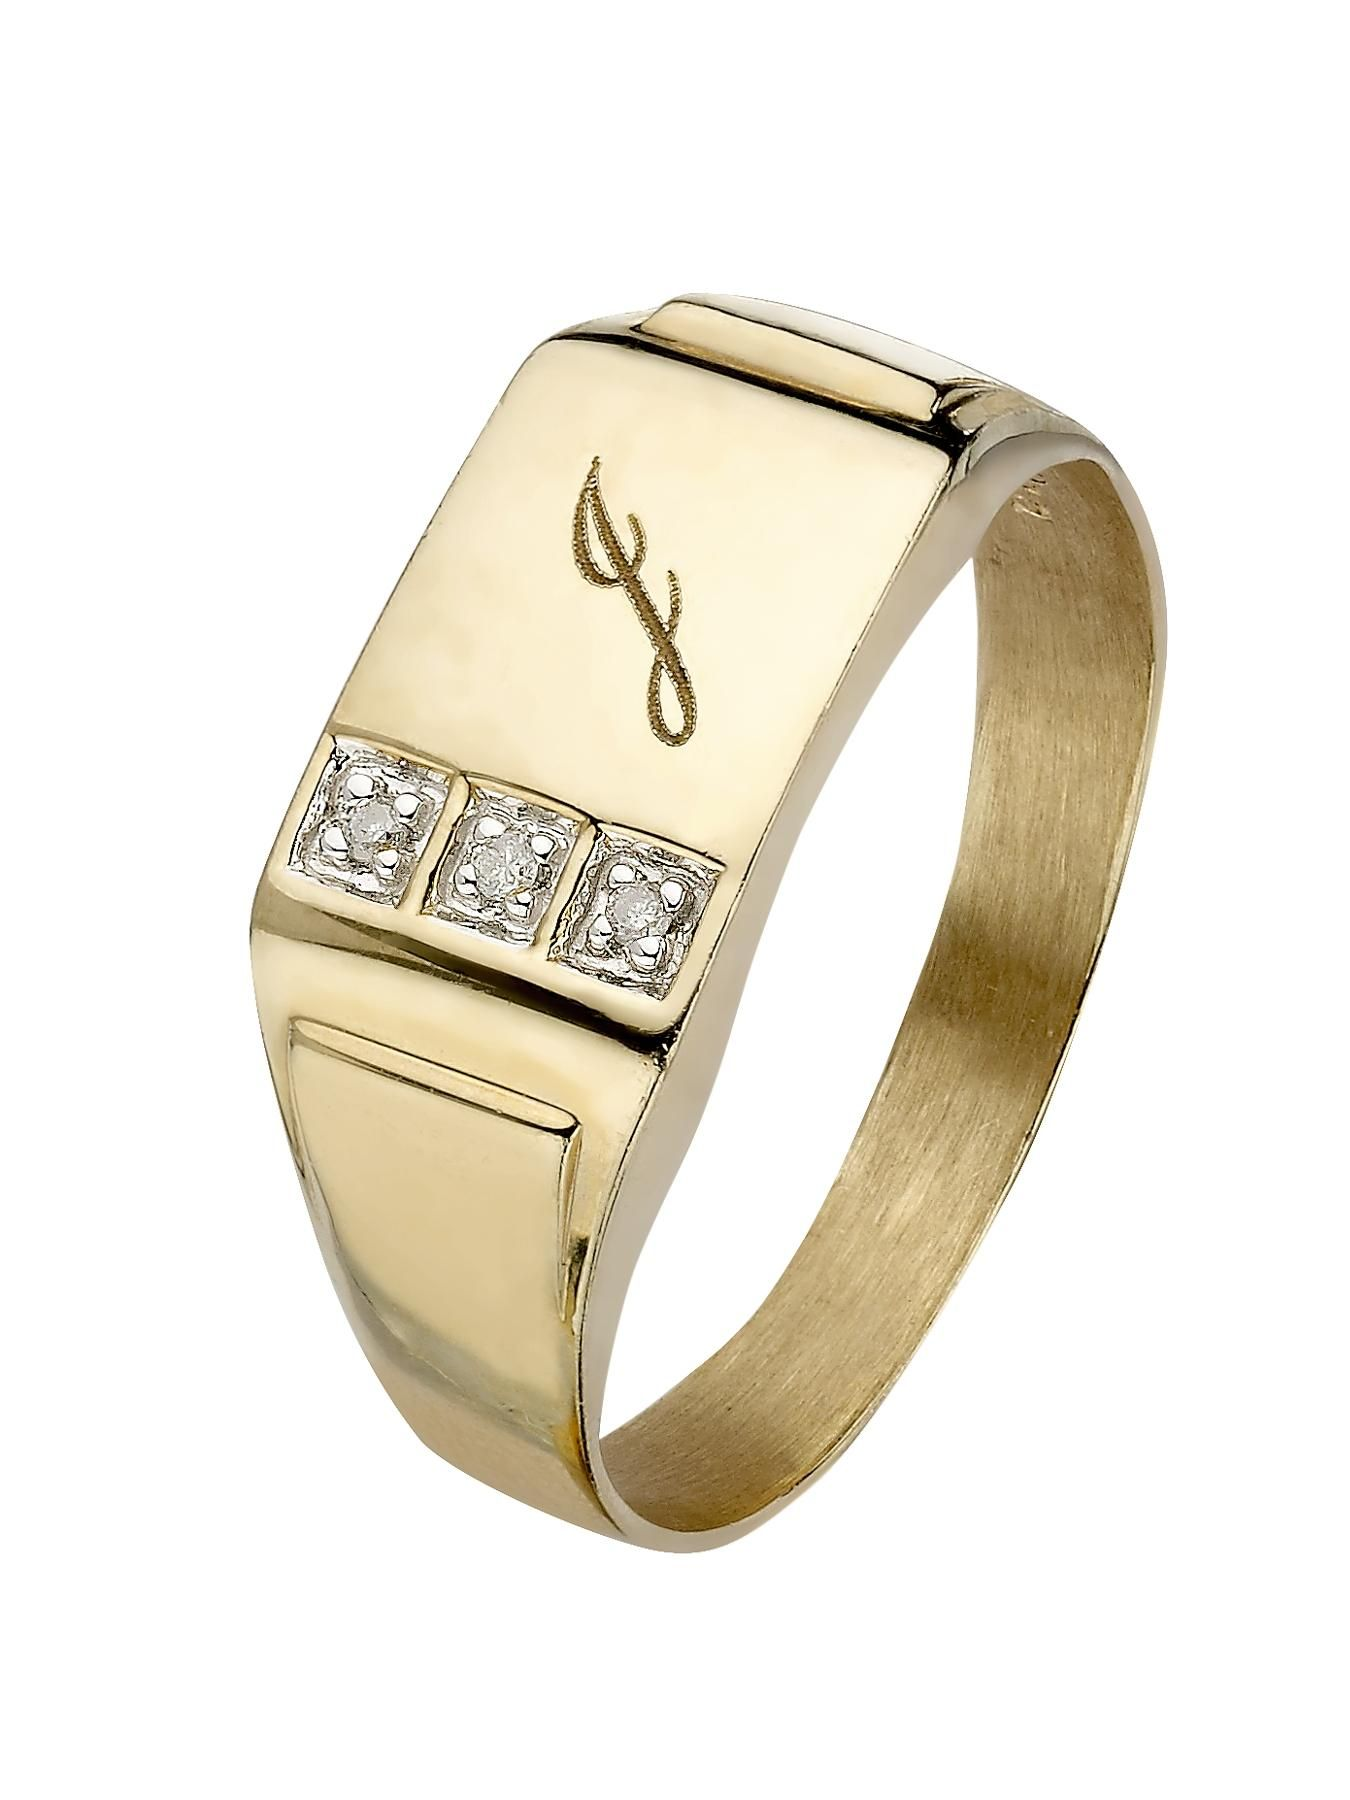 jewellery forever online shop the ring buy diamond gold floral rings